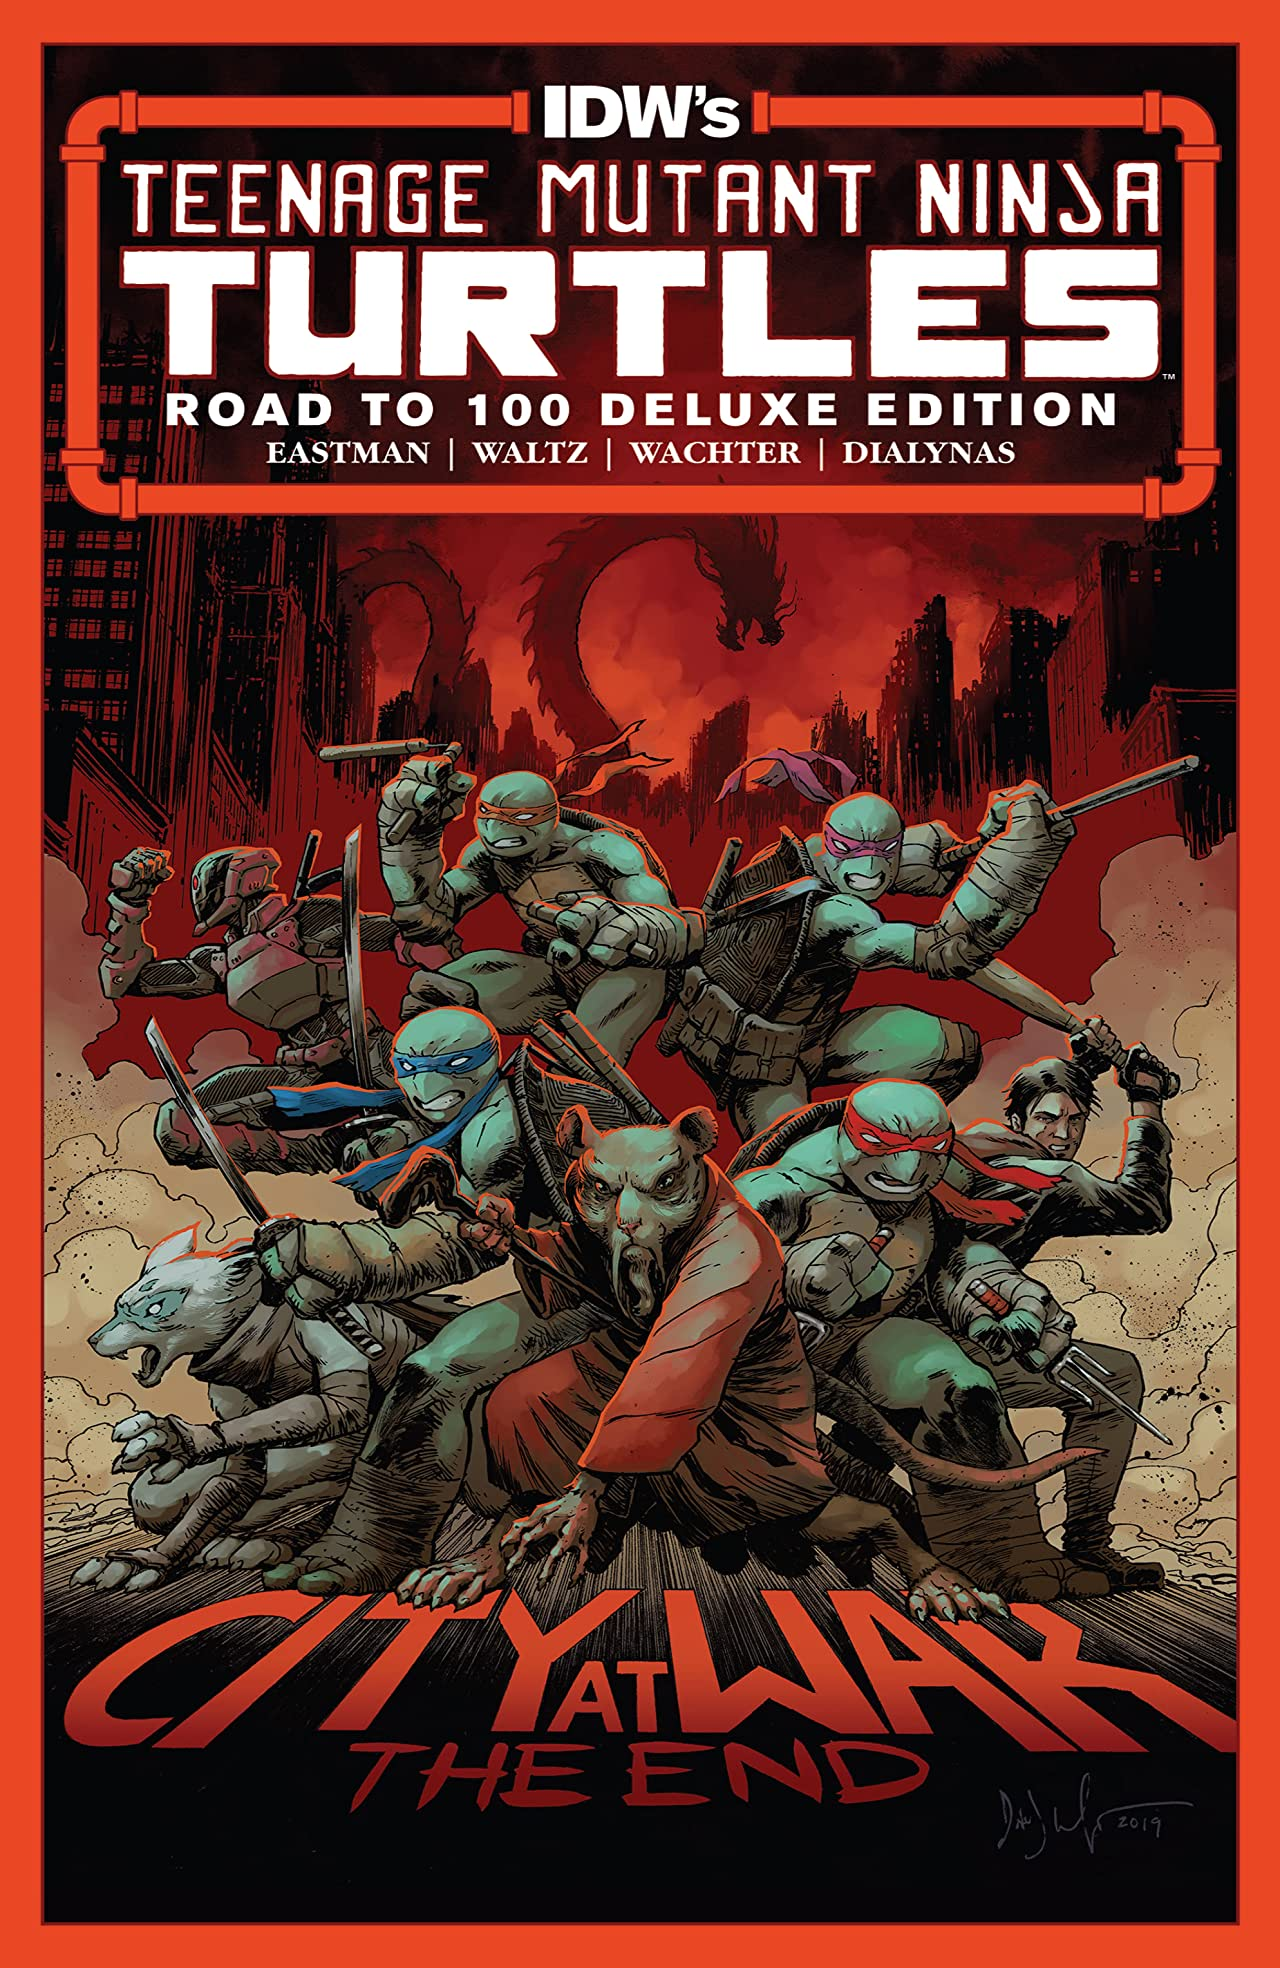 Teenage Mutant Ninja Turtles #100: Deluxe Edition